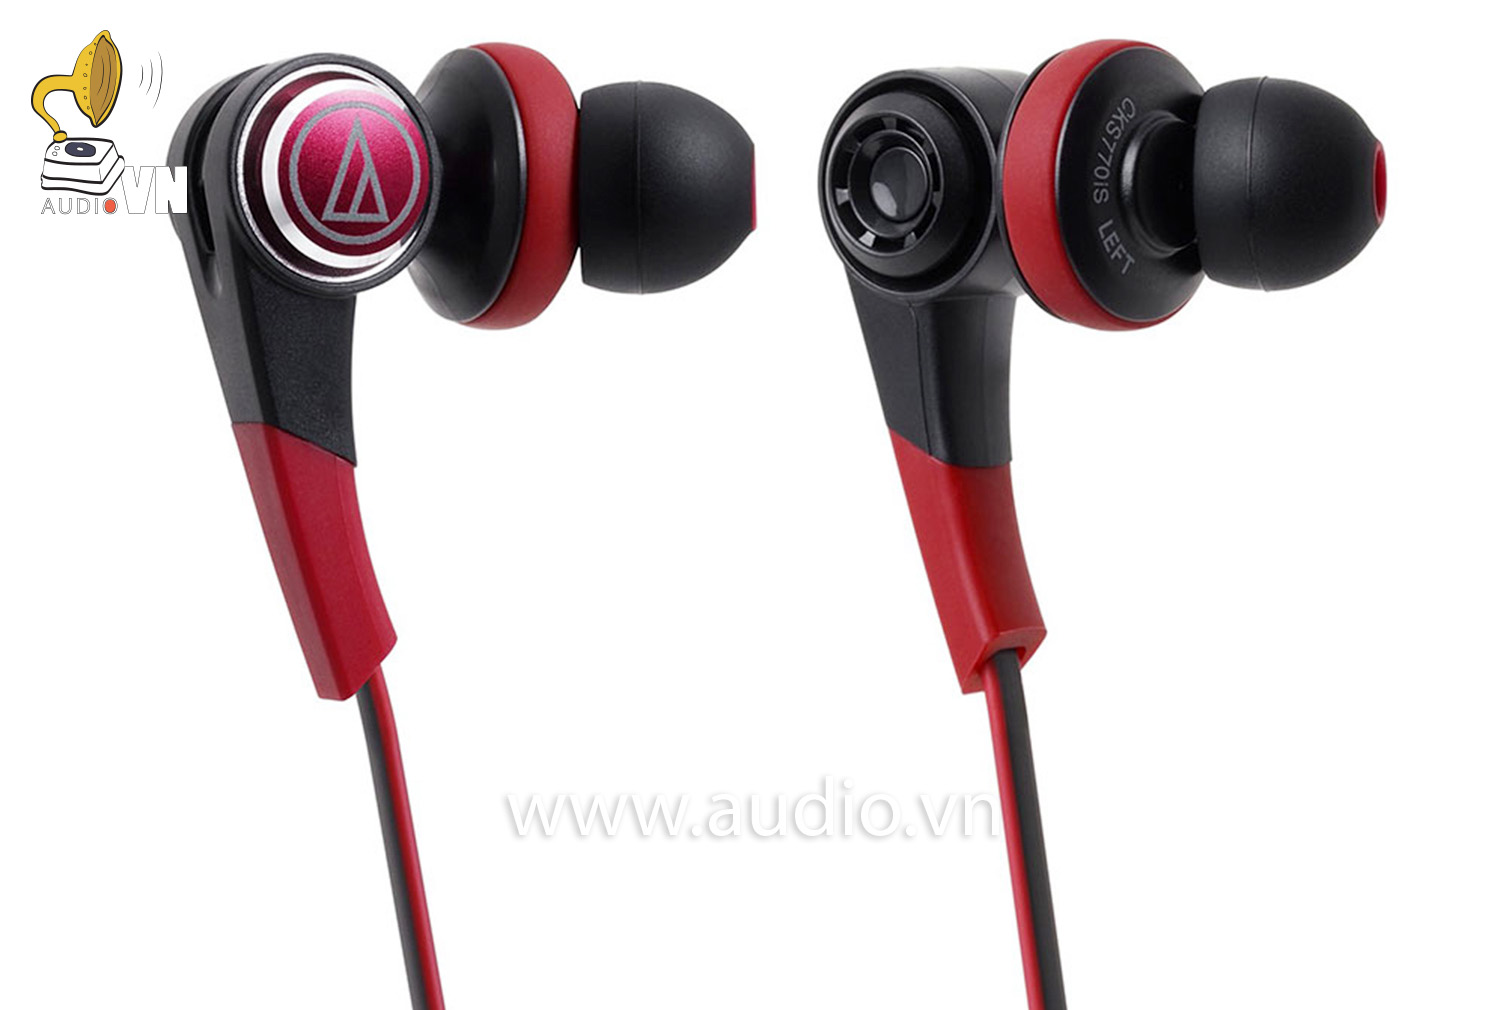 Audio Technica CKS770IS RD